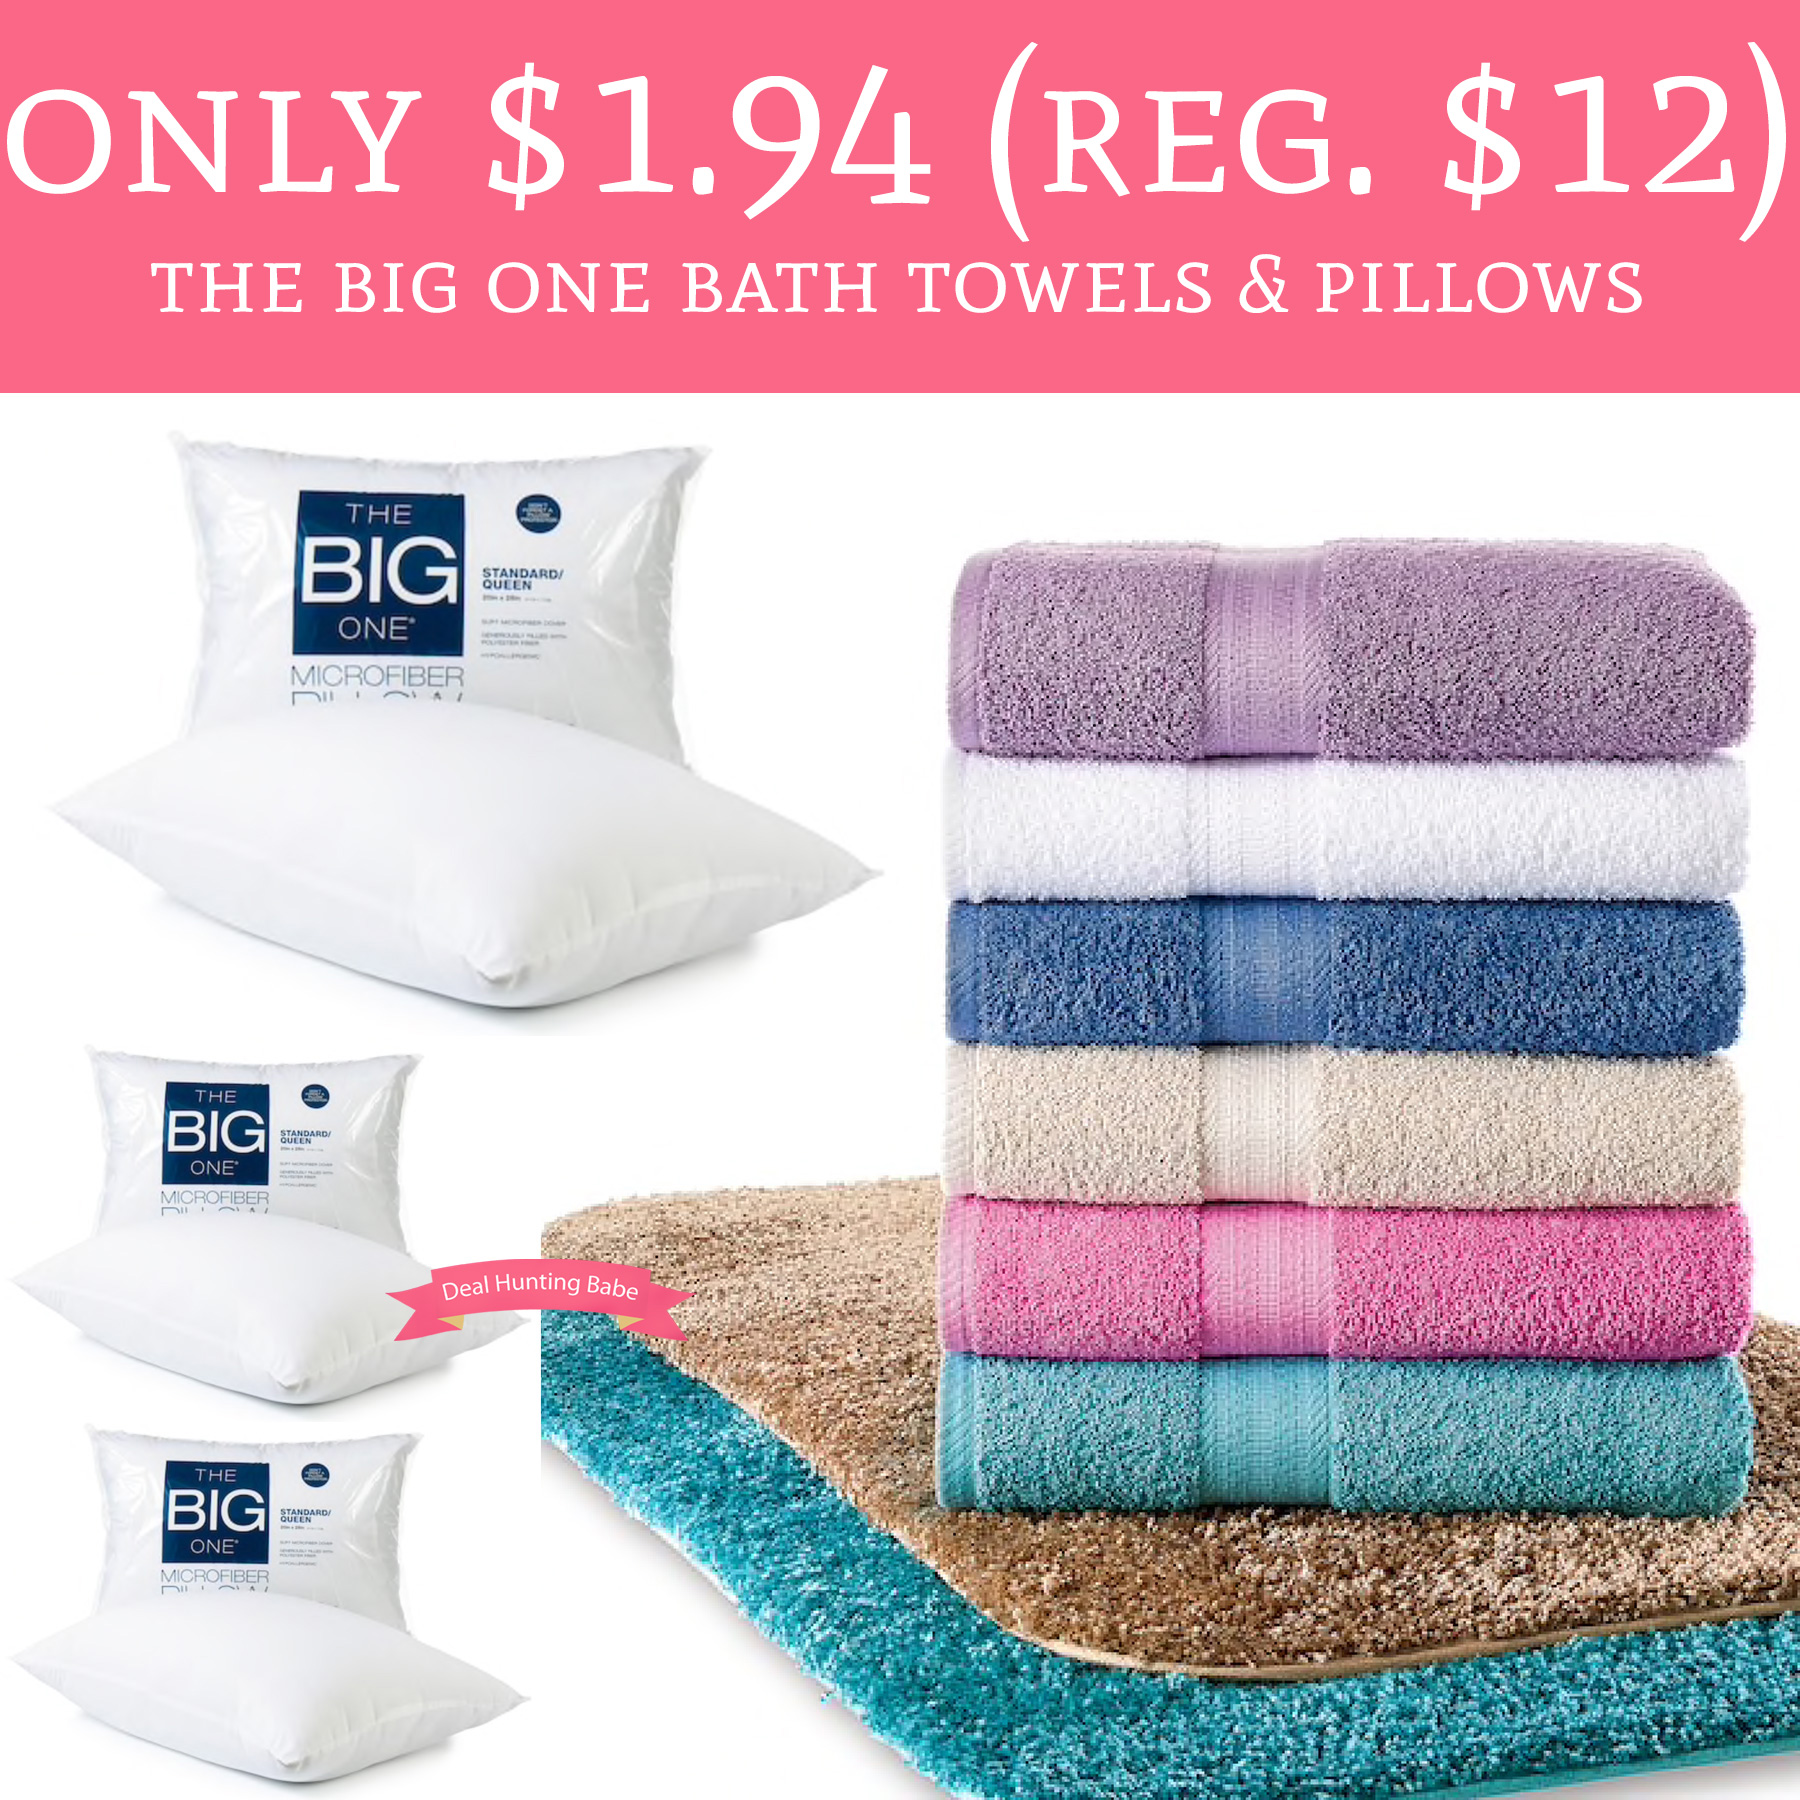 hot only regular 12 the big one bath towels pillows deal hunting babe. Black Bedroom Furniture Sets. Home Design Ideas